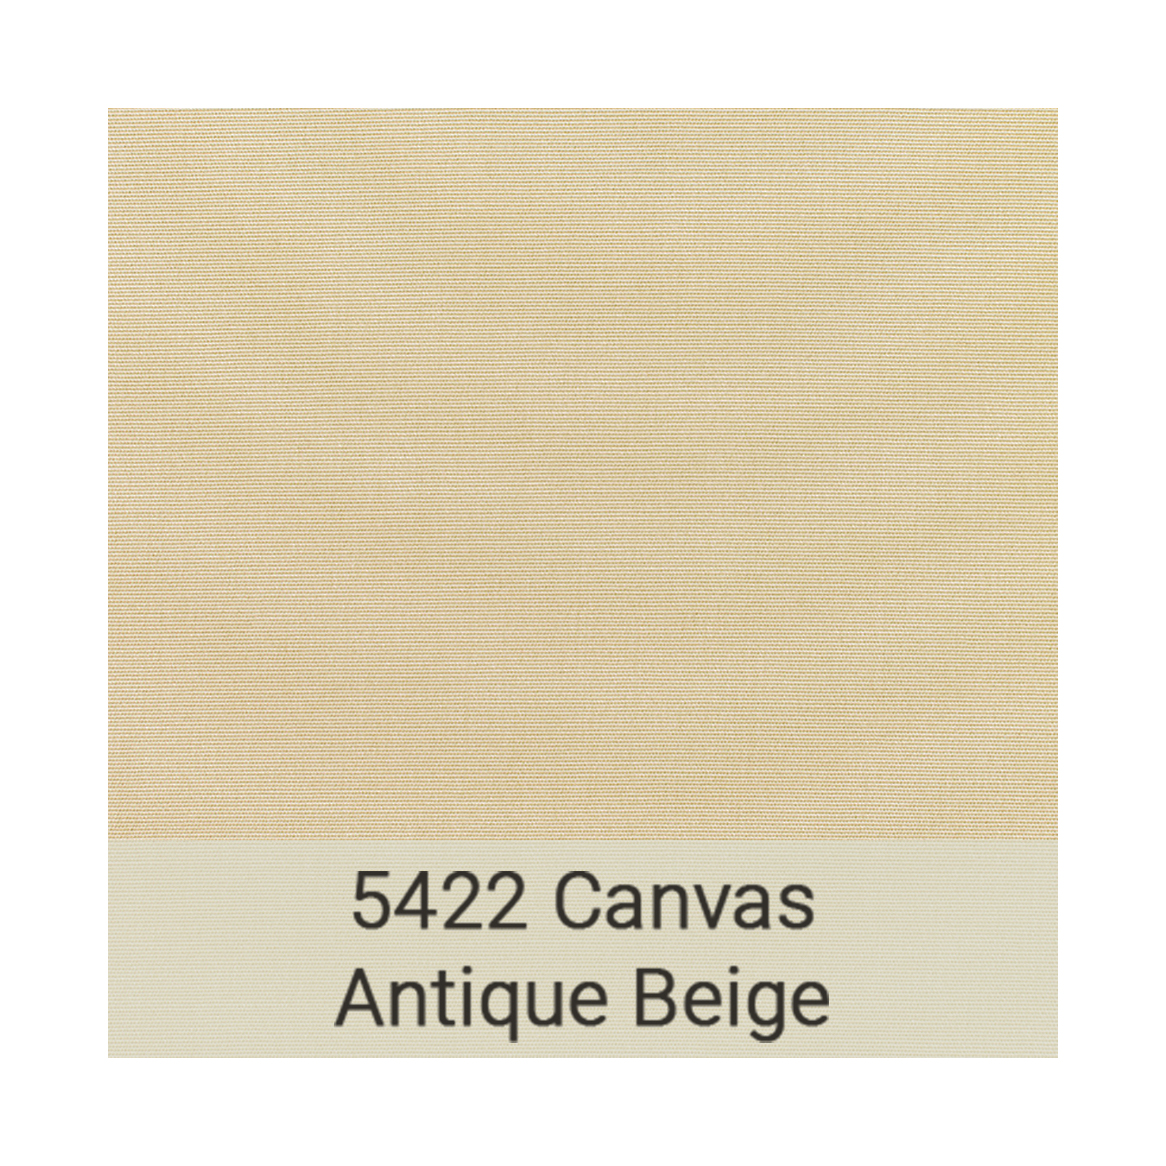 Kingston Casual Sunbrella gradeb-5422-canvas-antique-beige